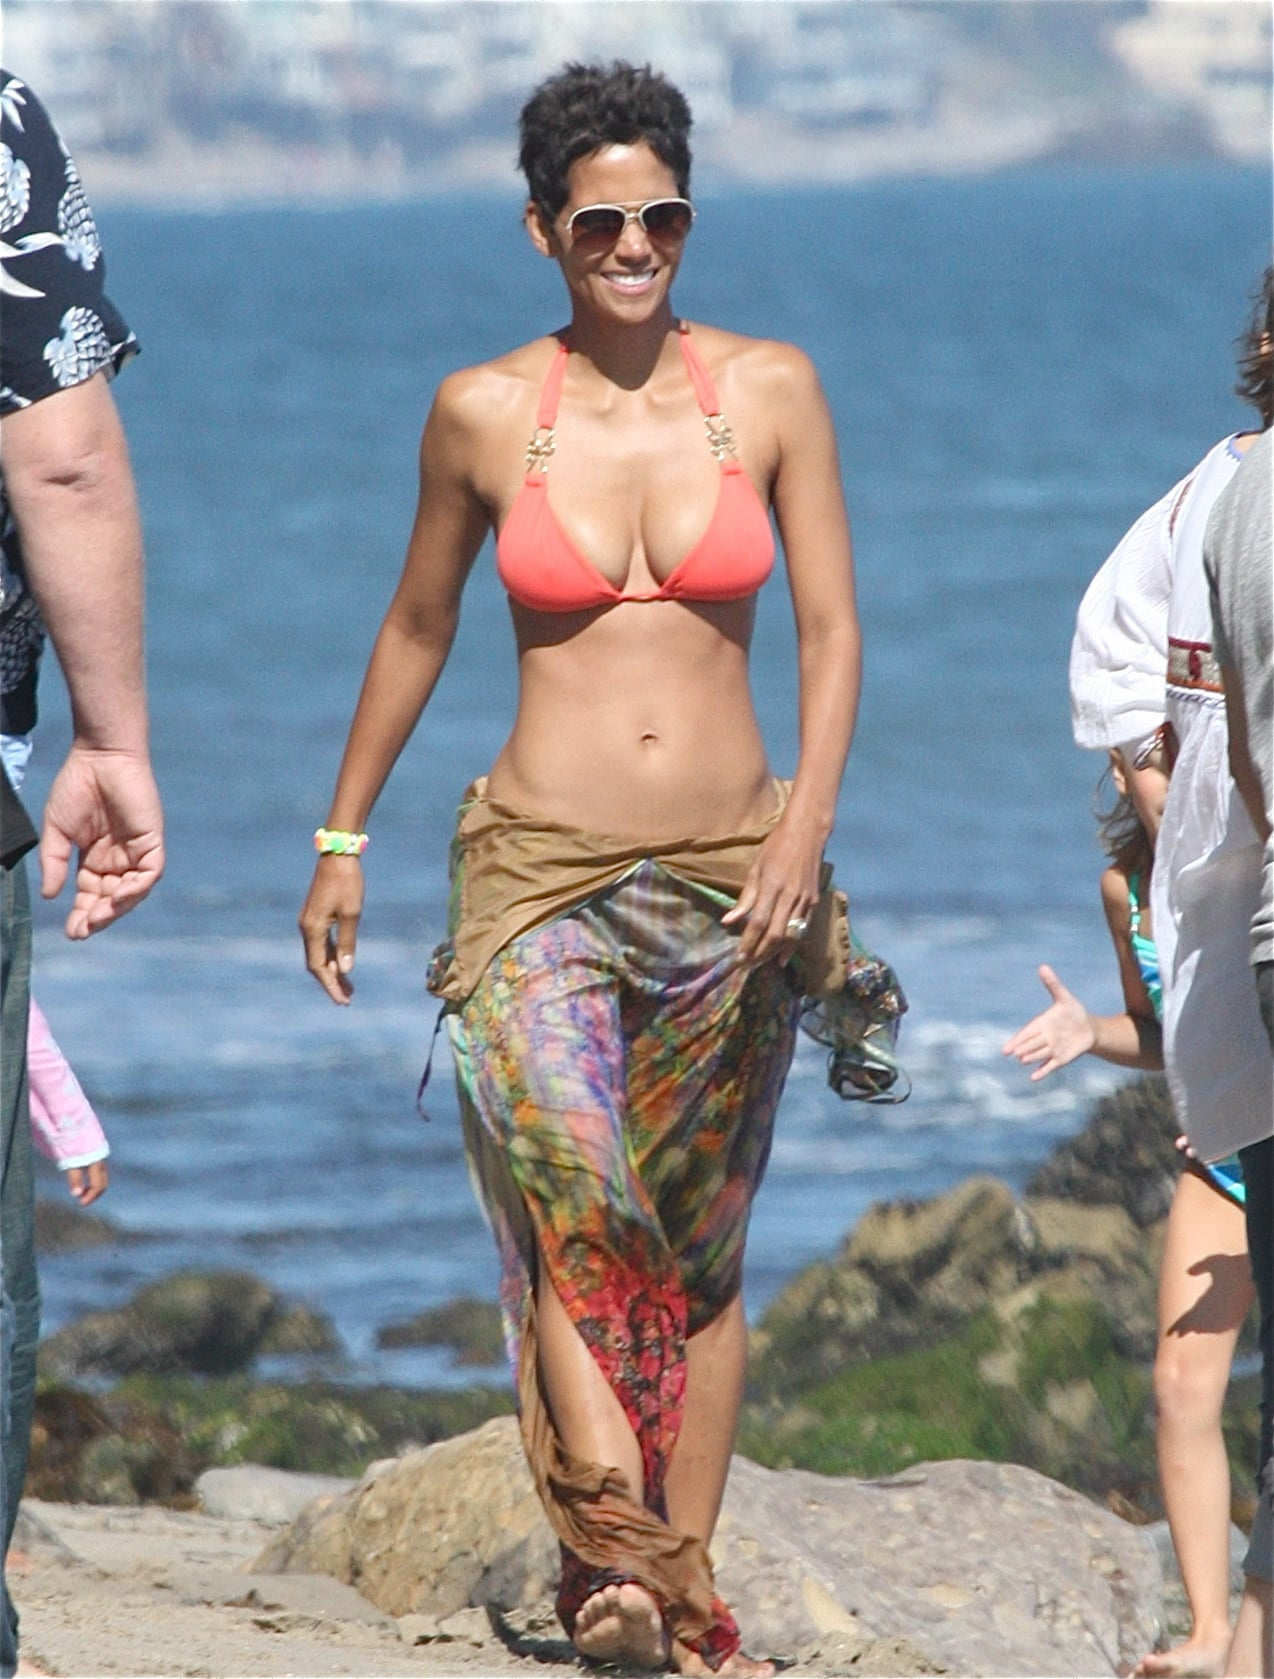 At 49, she looks better than any of us in a bikini.